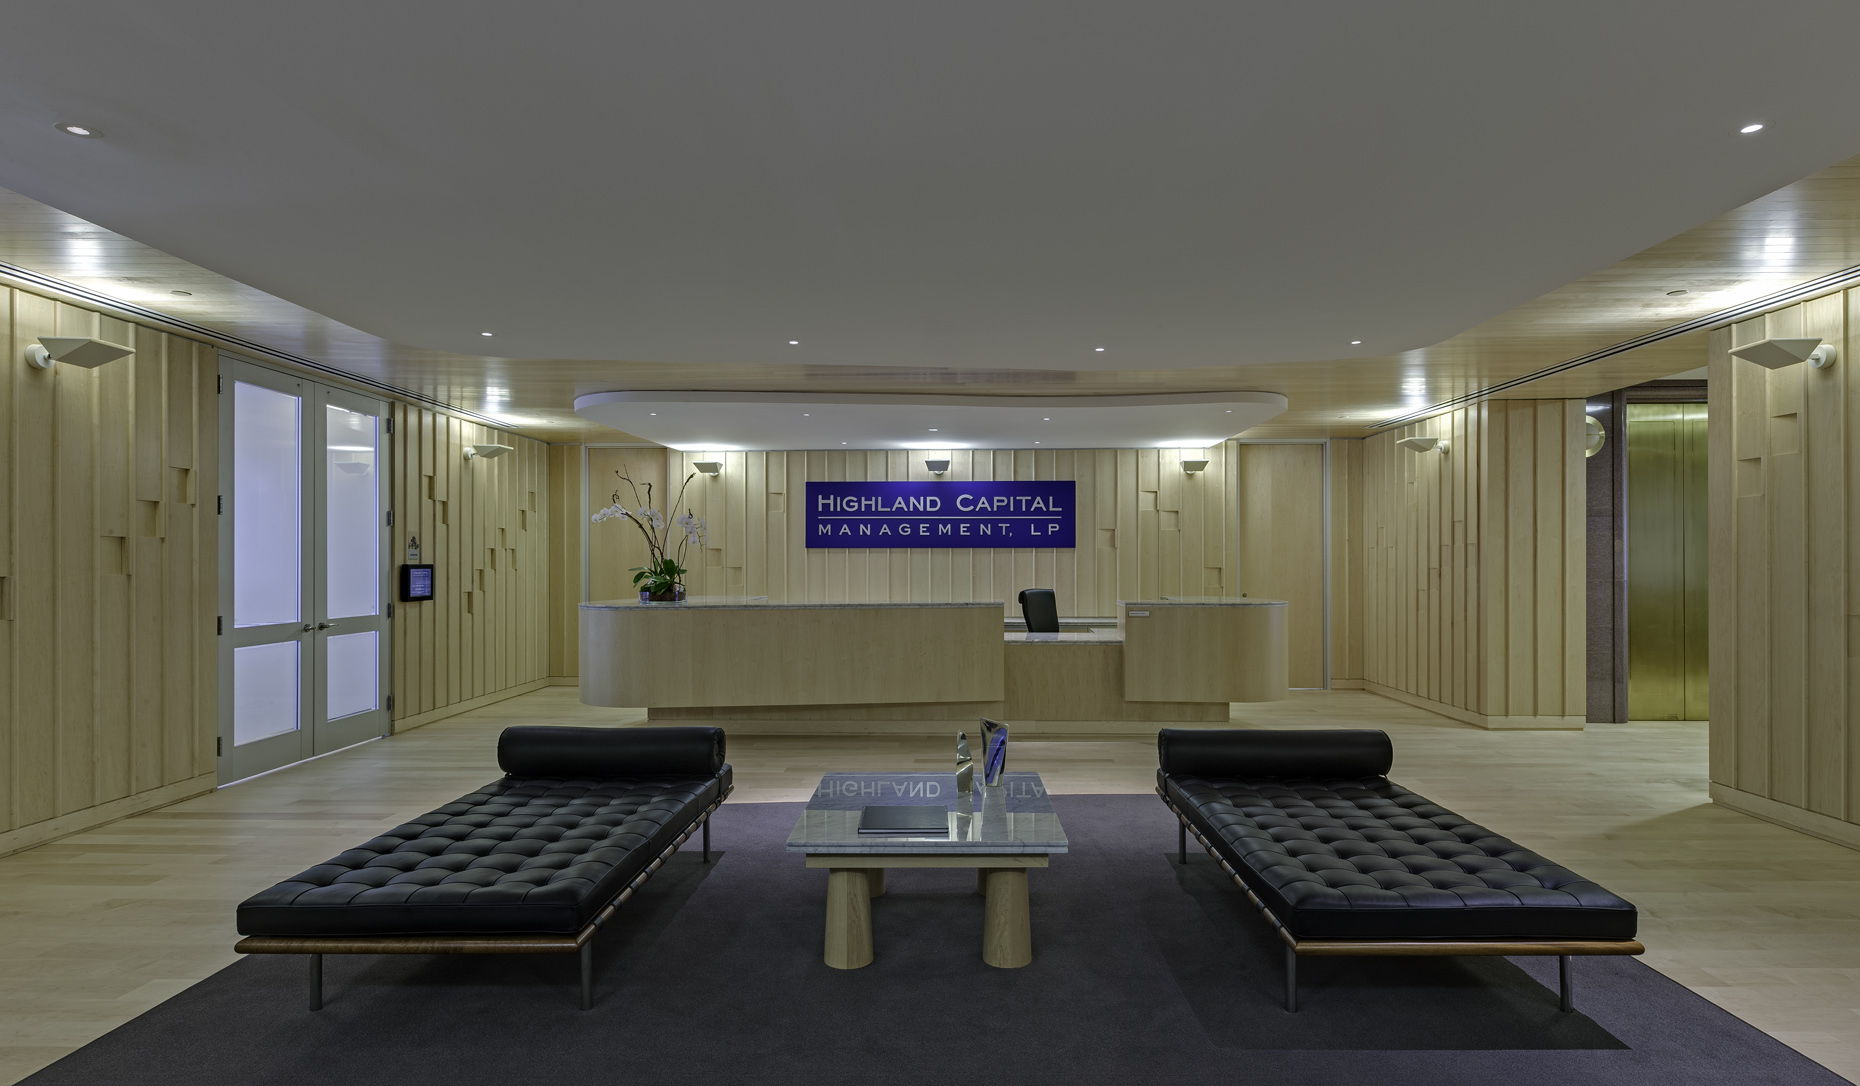 HighlandCapital_interior_02